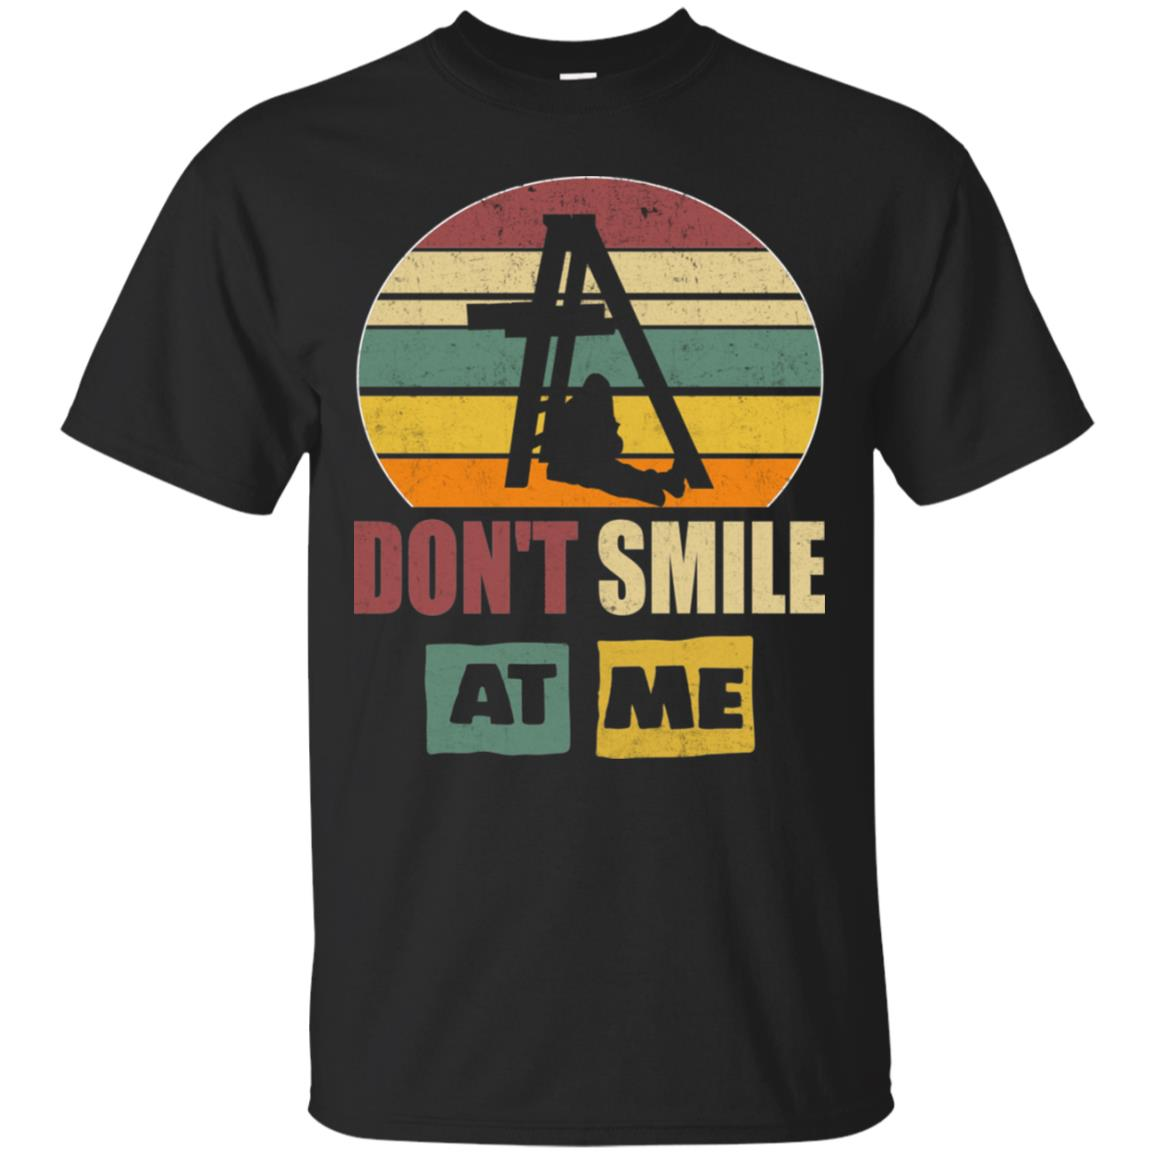 9dc2864b252 Don t Smile at Me Billie Eilish shirt